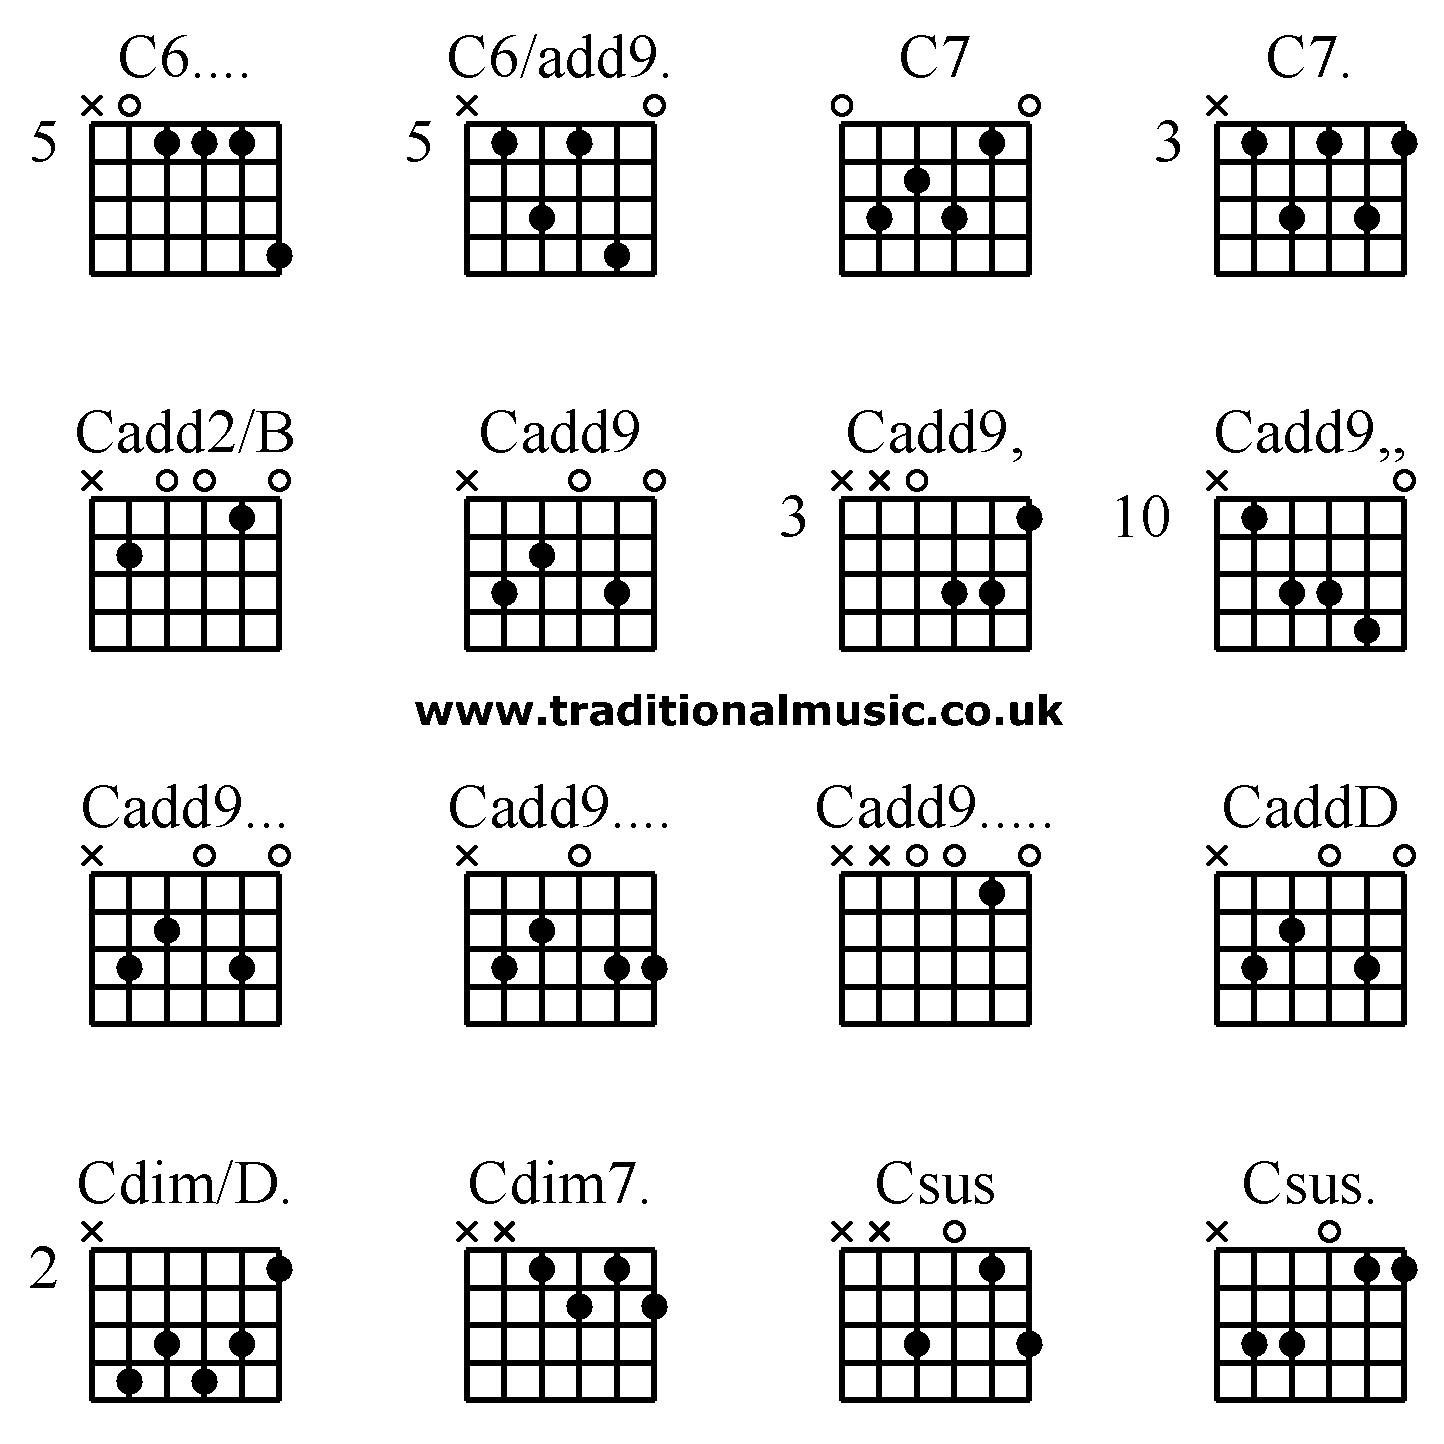 Guitar chords advanced - C6. C6/add9. C7 C7., Cadd2/B Cadd9 Cadd9, Cadd9 Cadd9. Cadd9. Cadd9 ...